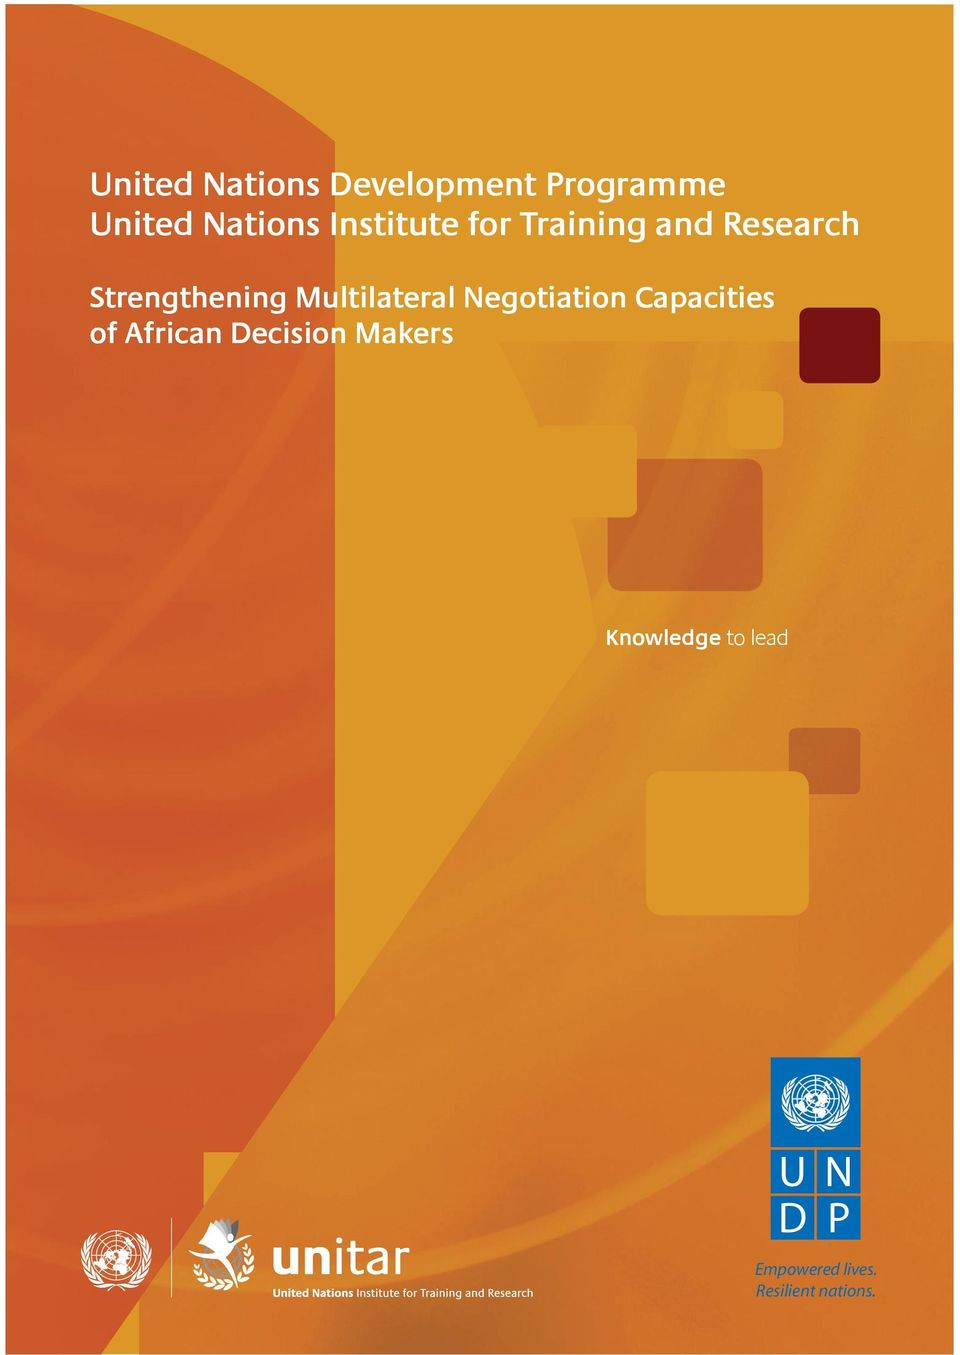 capacity building initiatives for African officials in the context of the four key priority areas of the UNDP s Third Regional Cooperation Framework (RCF III).